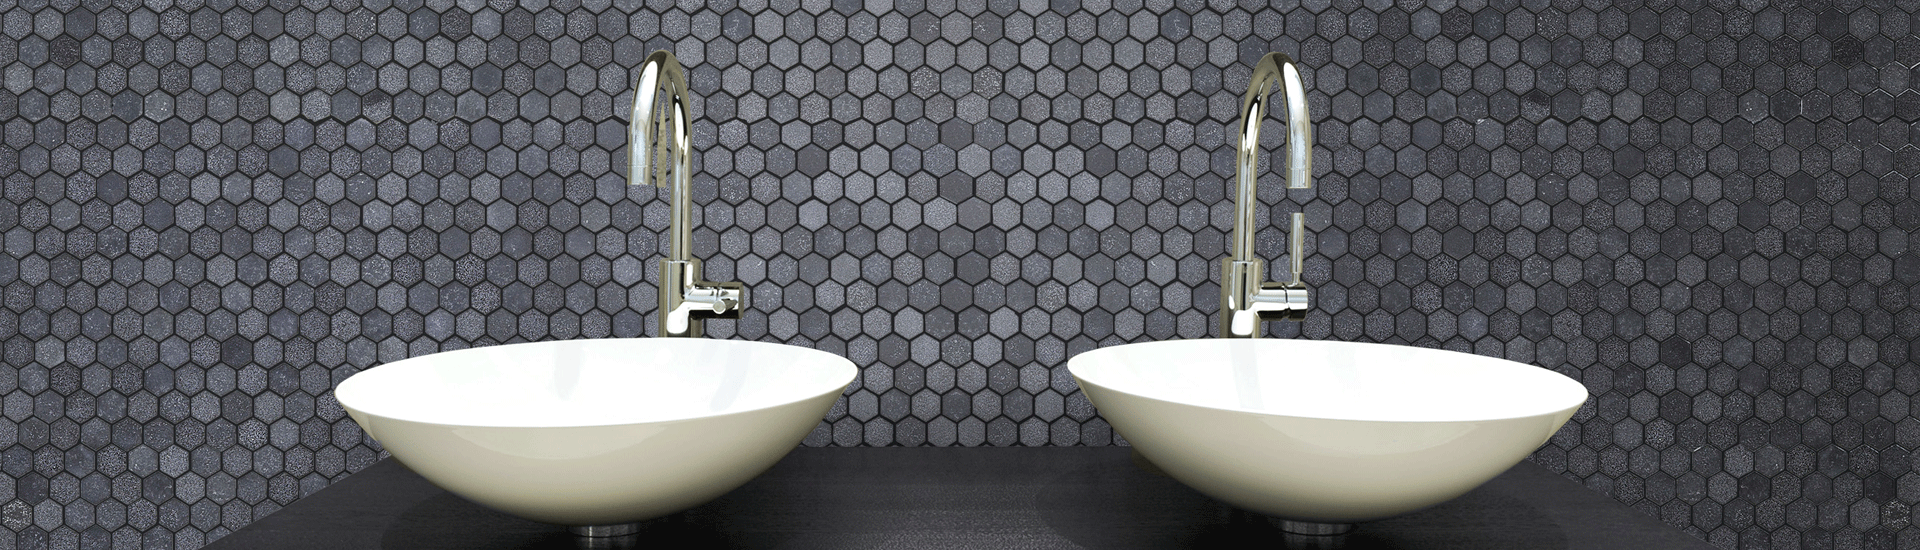 Crosby tiles in perth there is a large amount of choice when it comes to tiles and it is difficult to make the best choice since 1922 crosby tiles has been helping dailygadgetfo Images